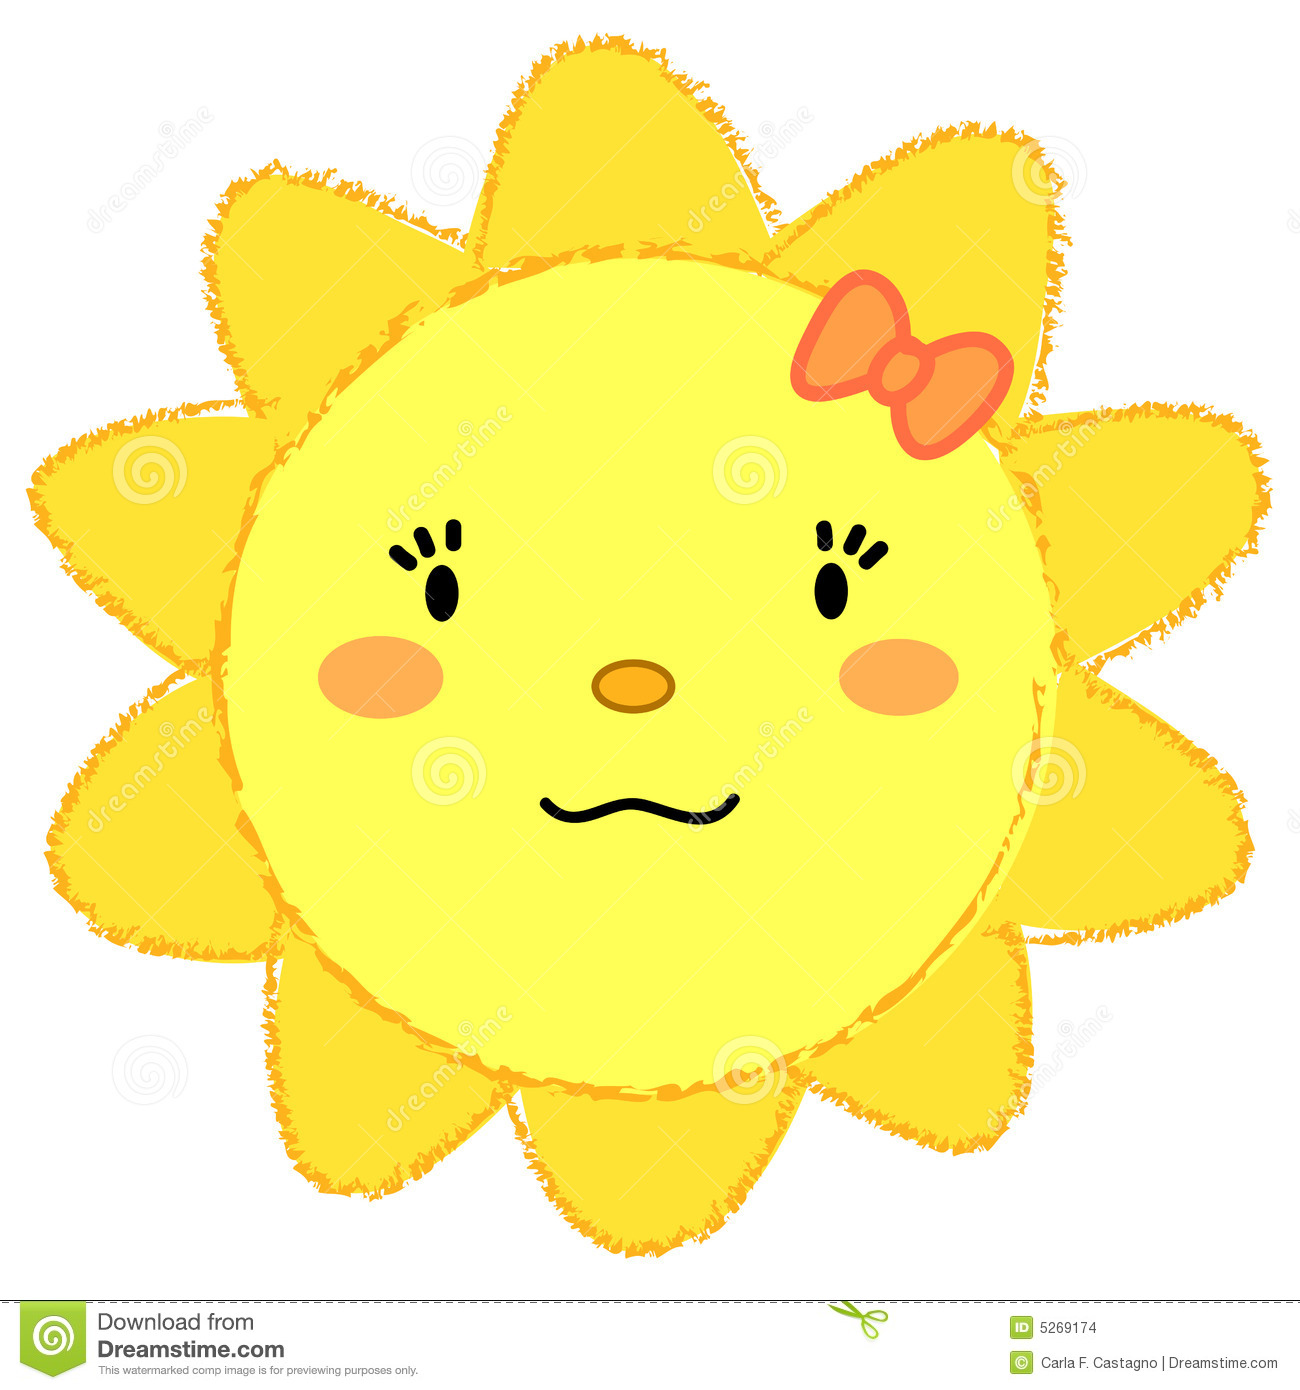 Cute happy sun with a girly face. Vector illustration.